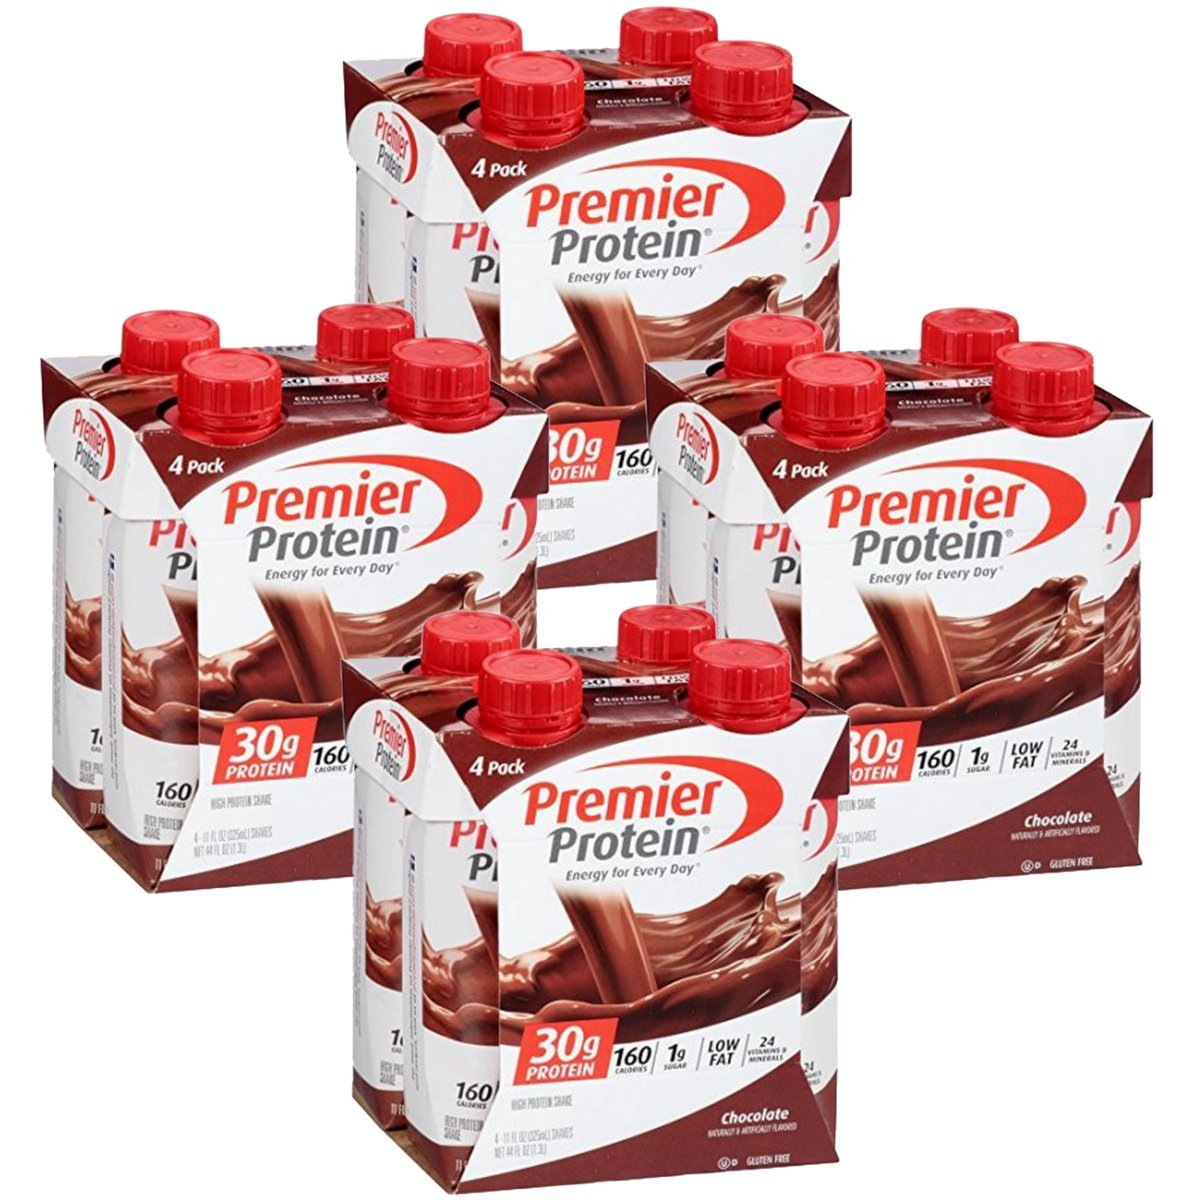 Premier Protein 30g Protein Shakes, Chocolate, 11 Fluid Ounces, 4 Count (Pack of 4)